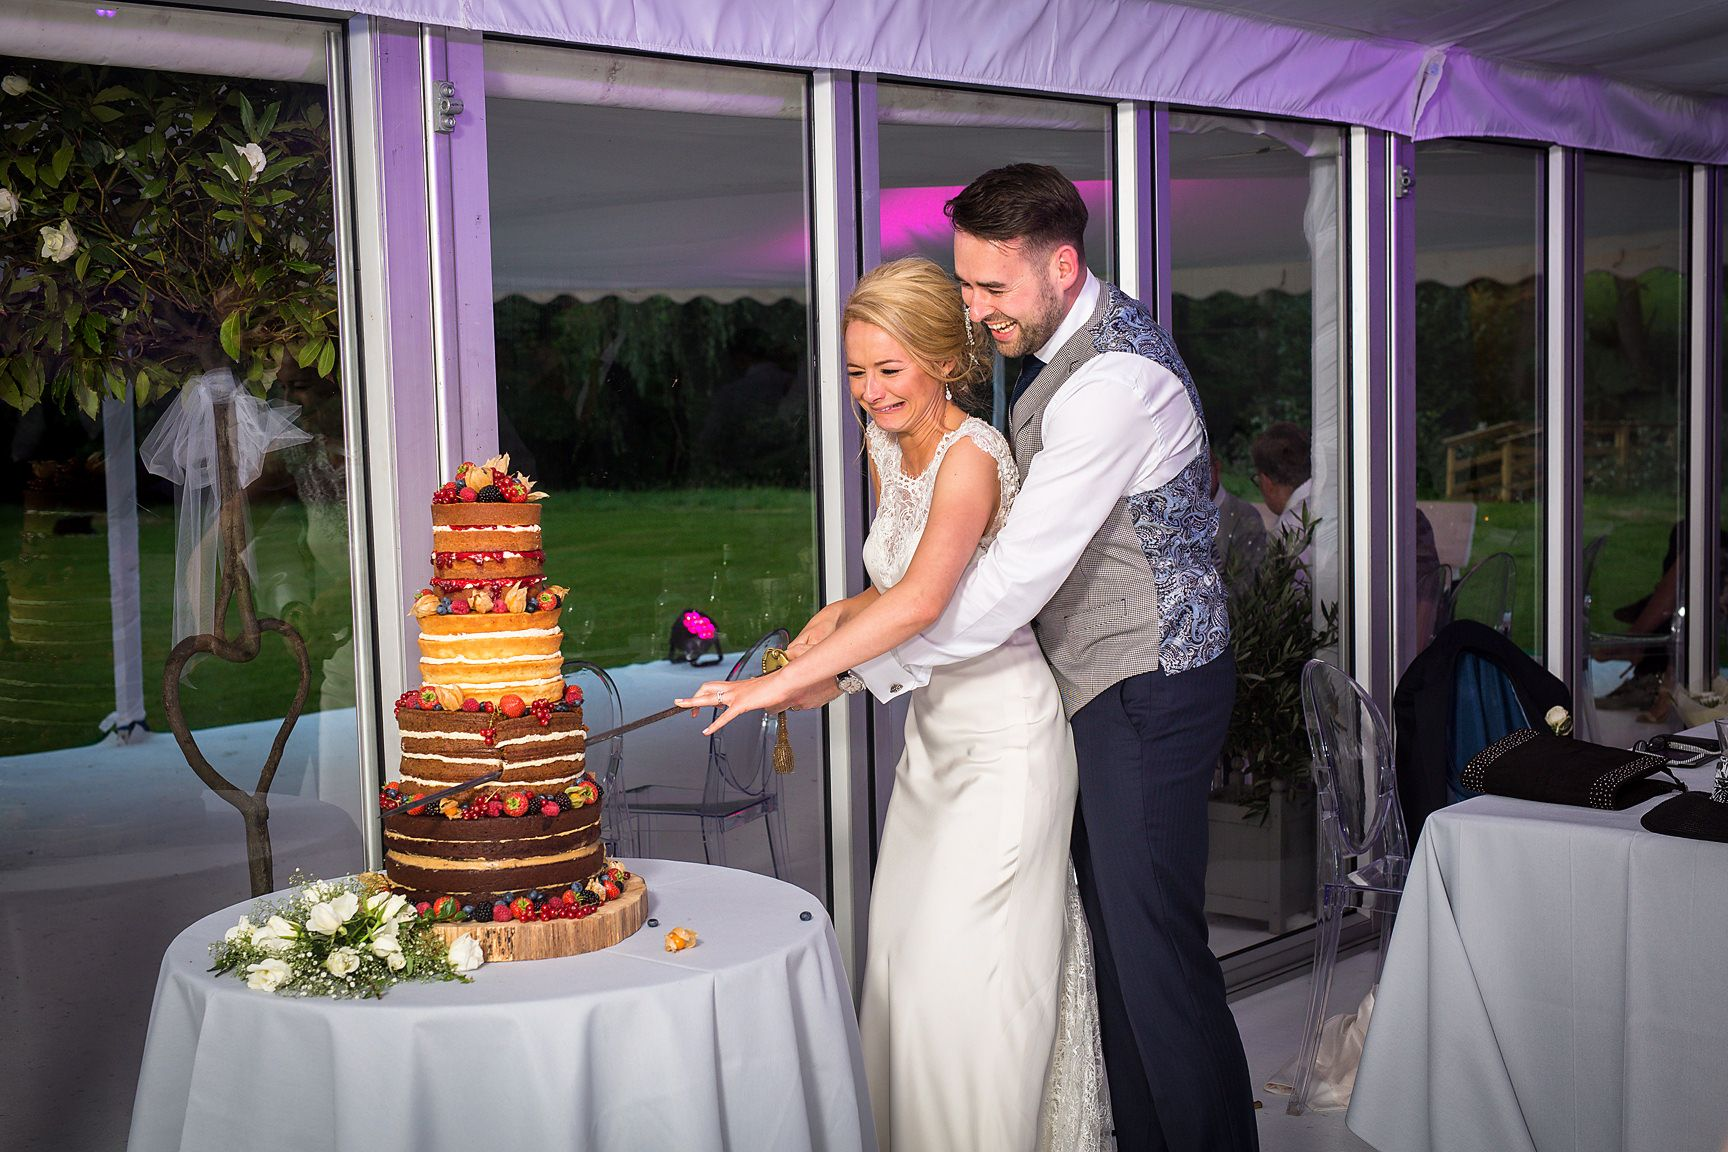 Bride and groom cut the cake at a Cheshire marquee wedding